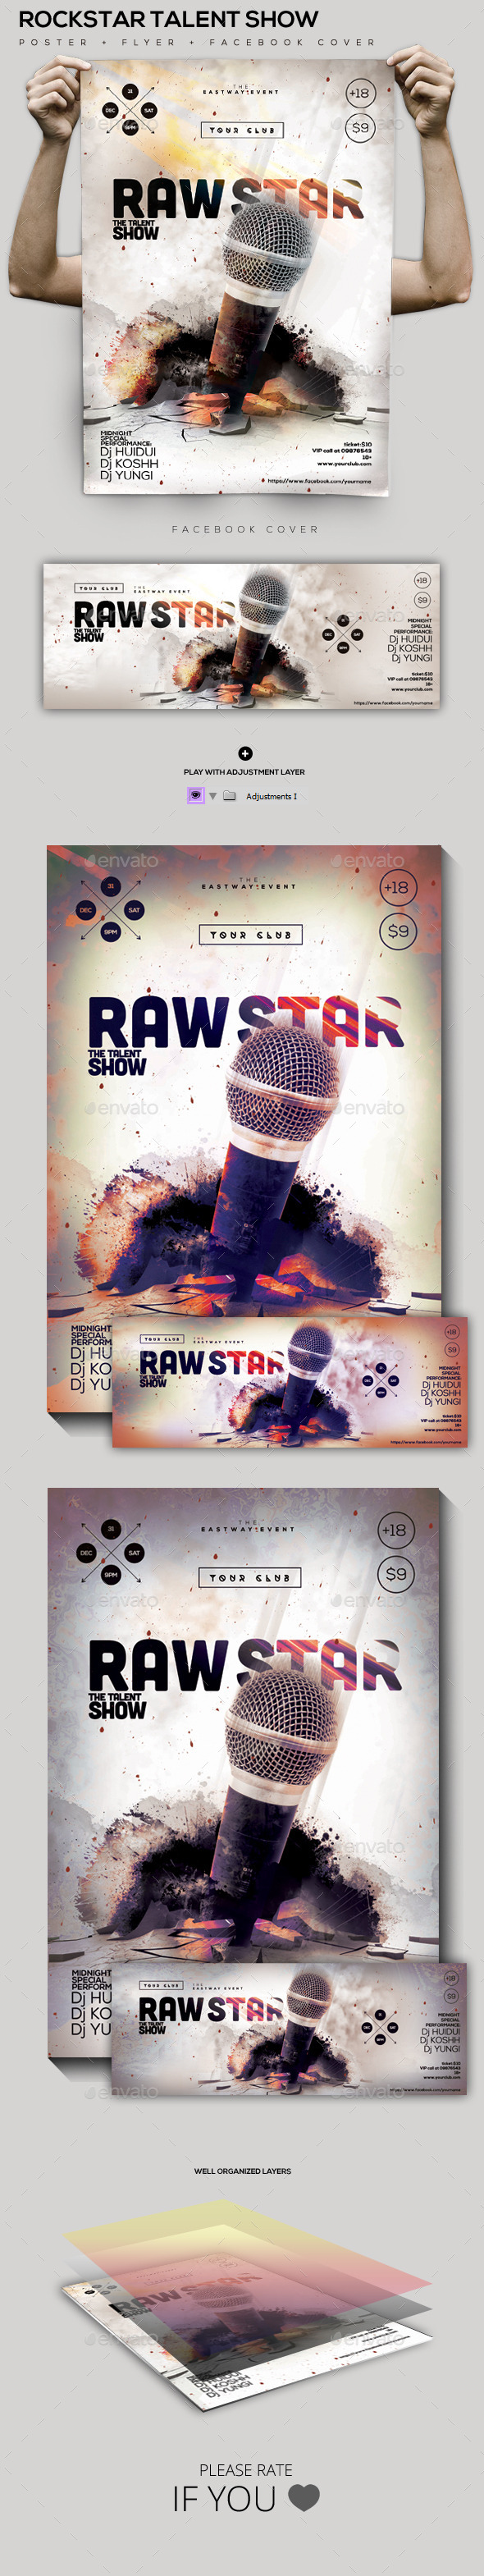 GraphicRiver Rock-Star Talent Poster Facebook Cover 10028720